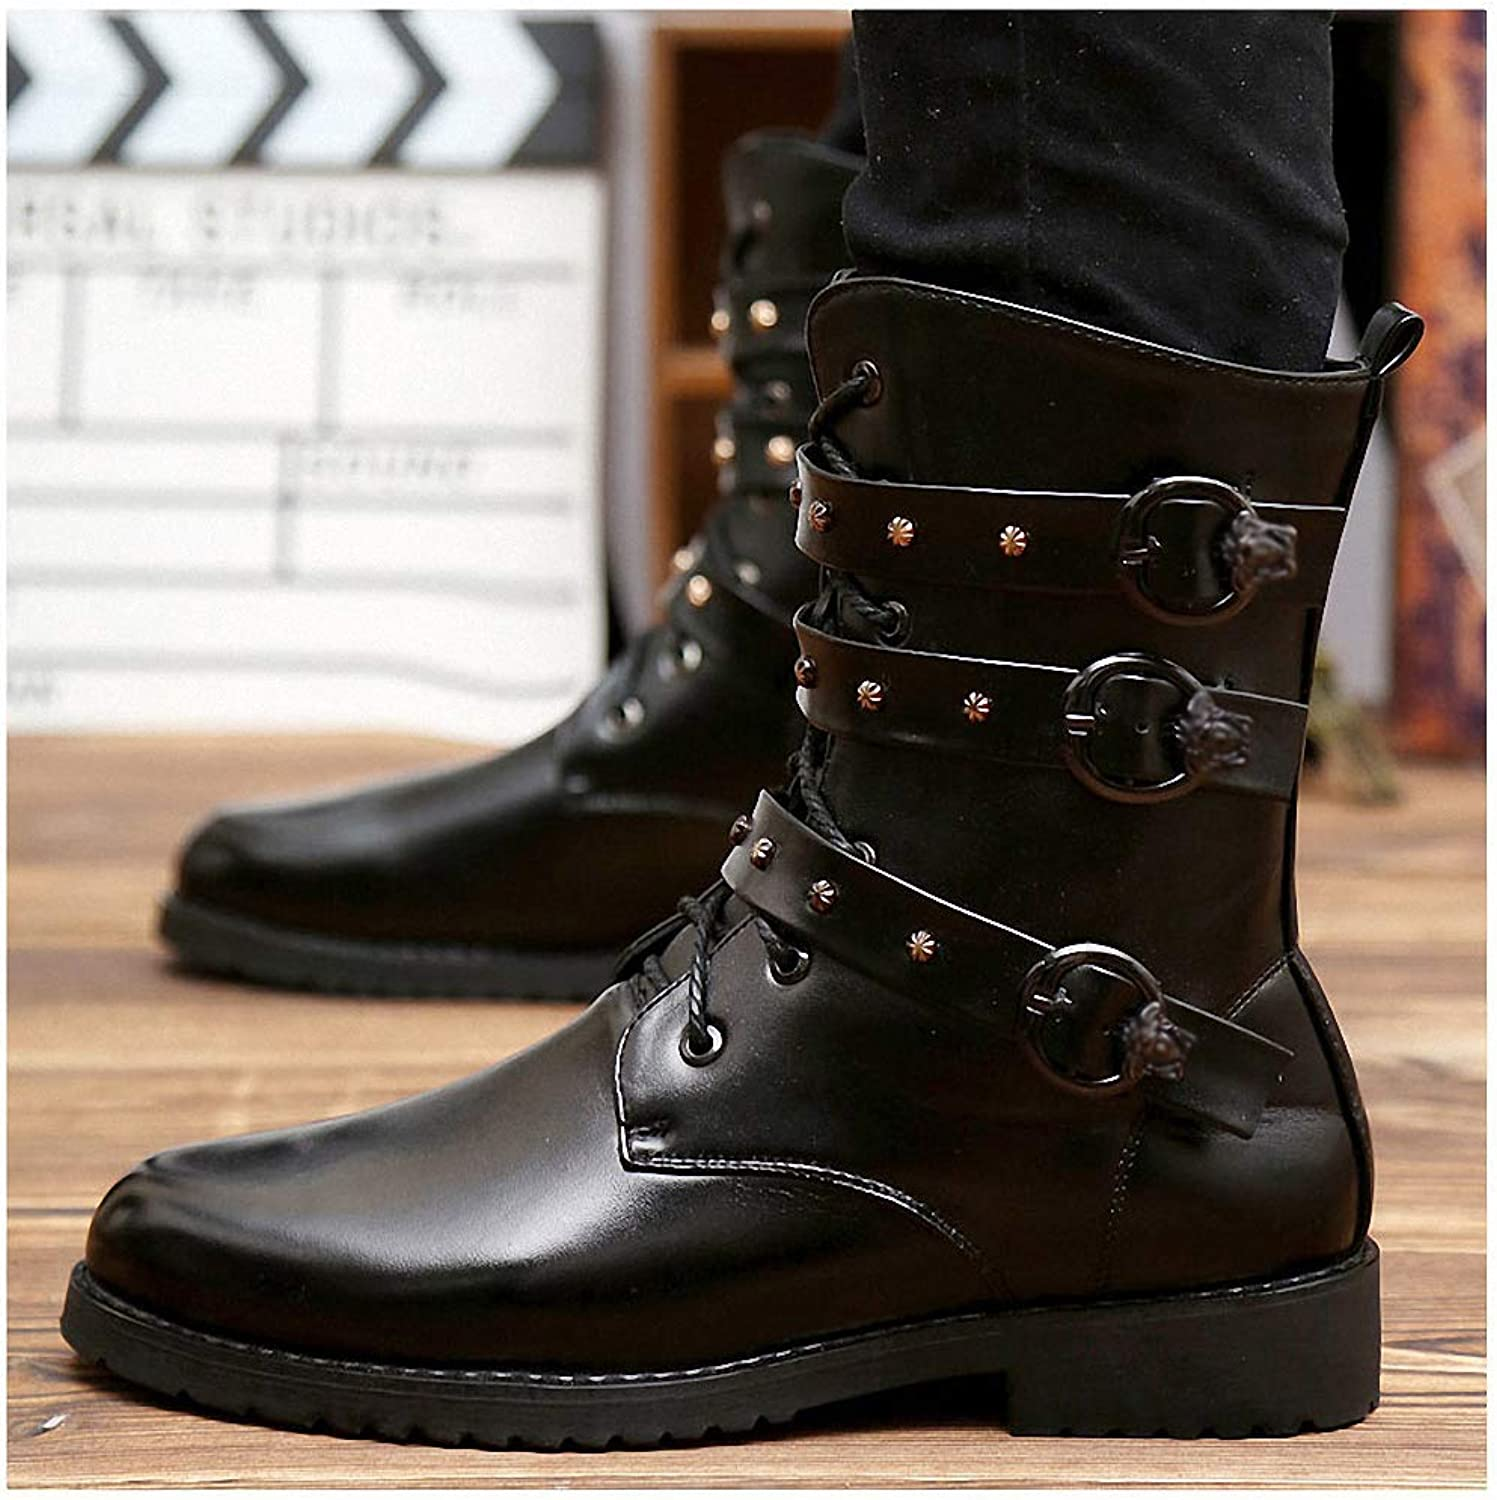 Mens Backpacking Boots Gothic Ankle Strap Boots Punk Men shoes Spring Autumn Motorcycle Men Boots High-Cut Lace-up Warm Men Casual shoes